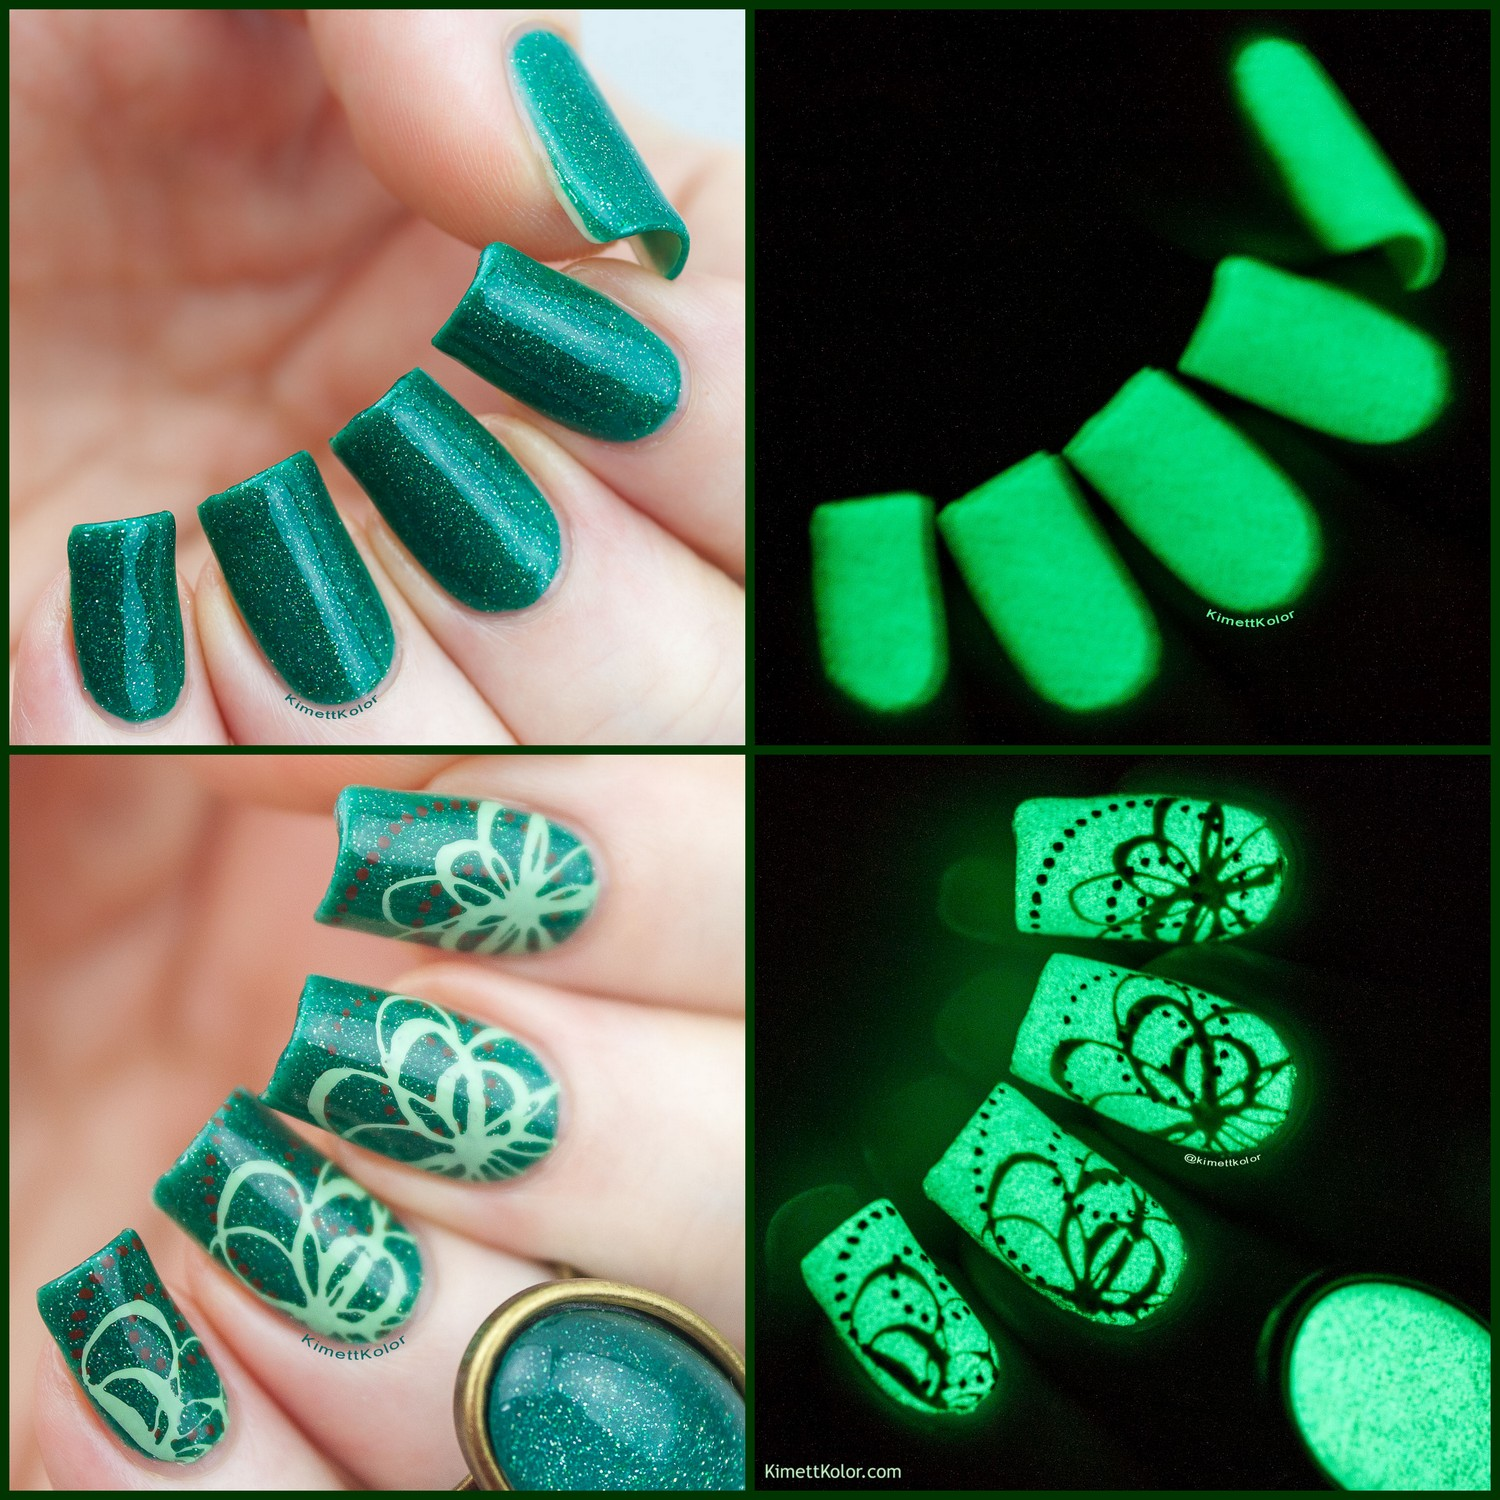 KimettKolor Glow-In-The-Dark Polish with Stamping